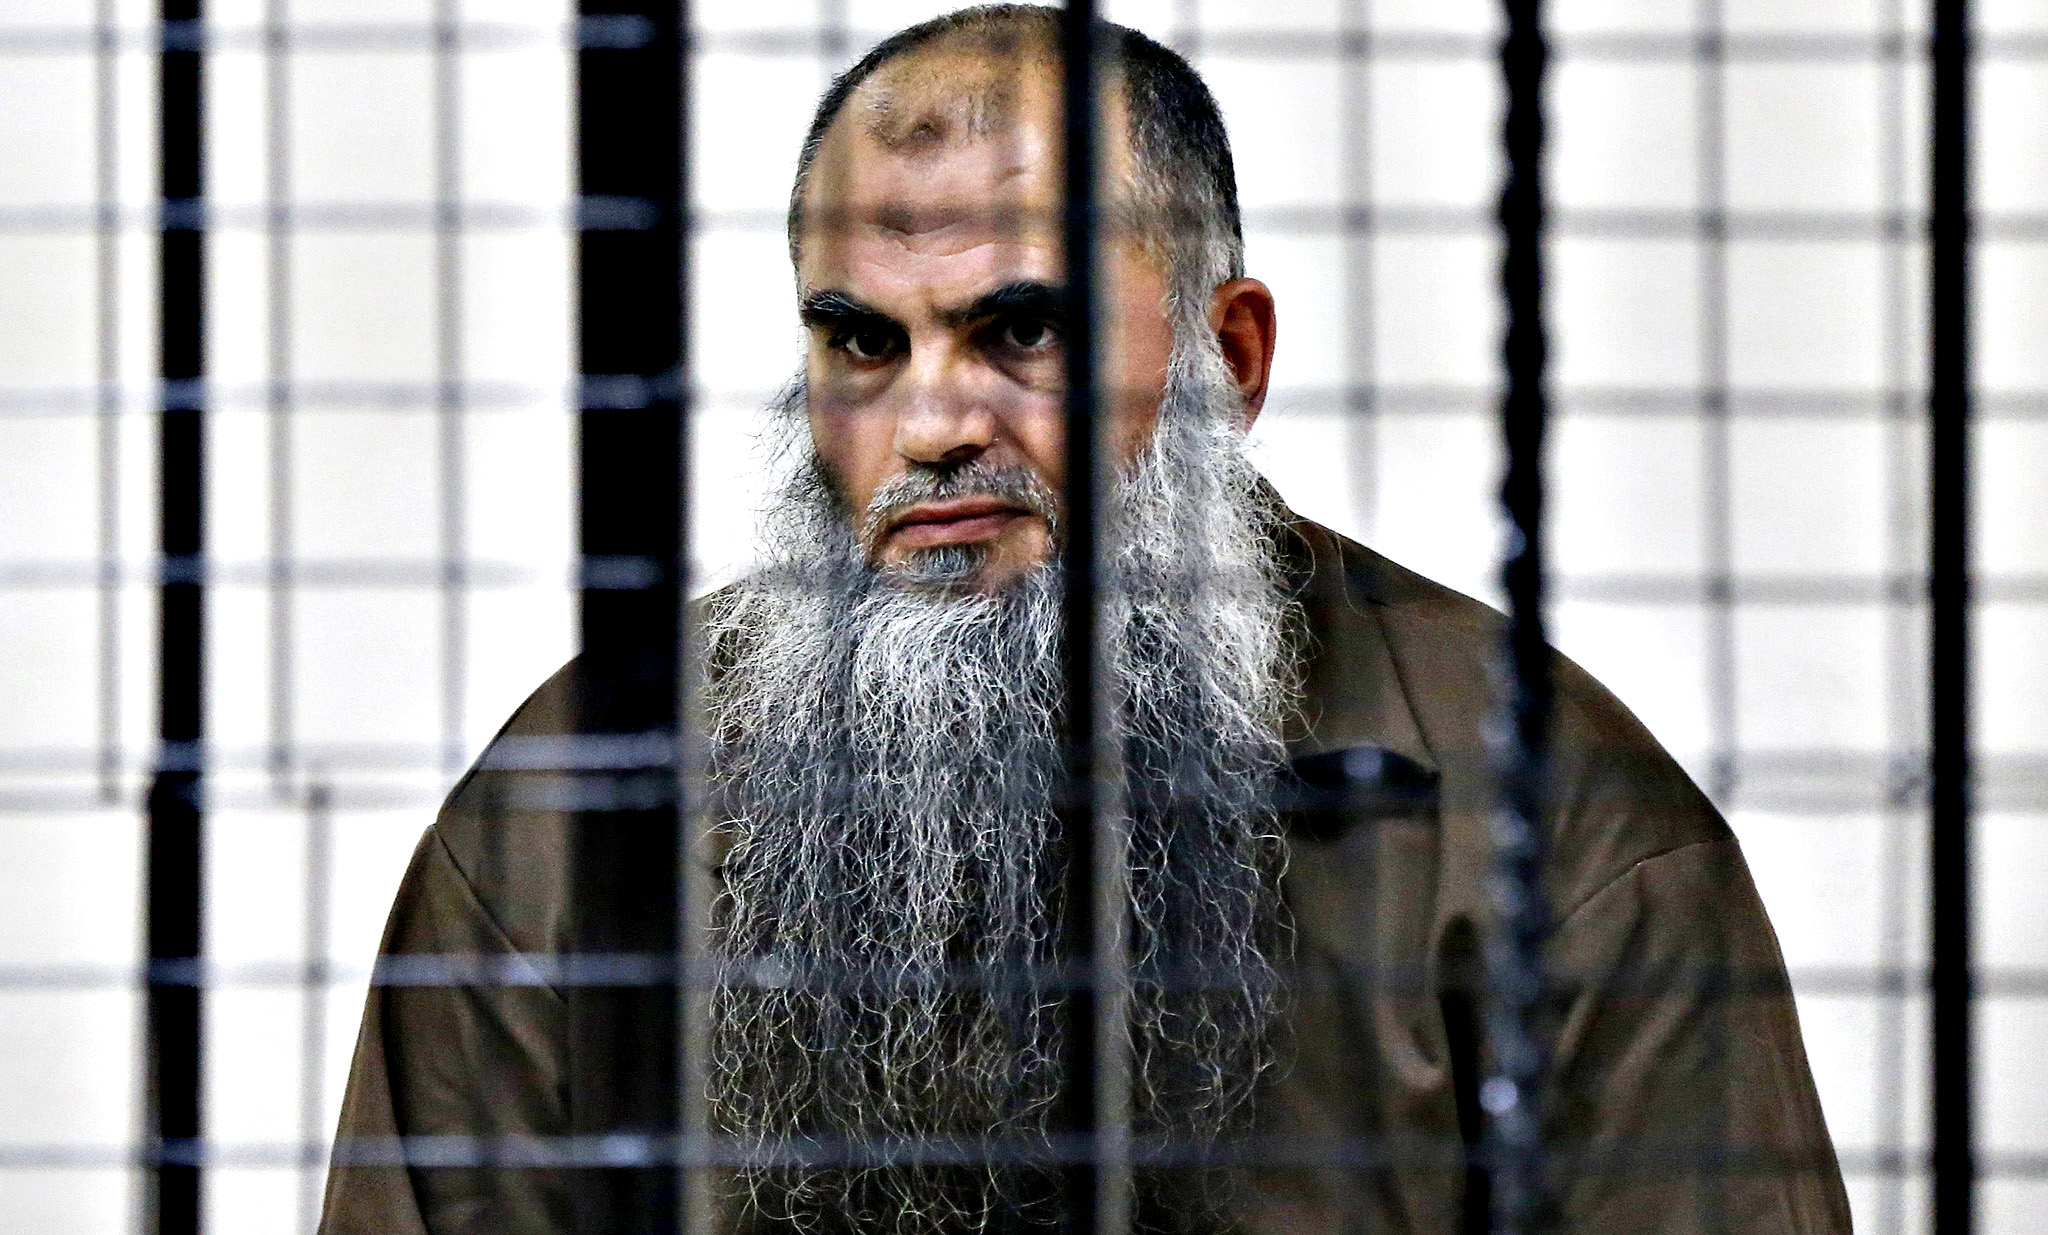 Radical Muslim cleric Abu Qatada looks on from behind bars at the State Security Court in Amman June 26, 2014. Jordan's state security court acquitted on Thursday Qatada of charges of conspiring to commit acts of terrorism, a reporter at the hearing said. The cleric, who was extradited from Britain after a lengthy legal process, will continue to be held because of separate charges related to a plot to attack tourists during Jordan's New Year celebrations in 2000.